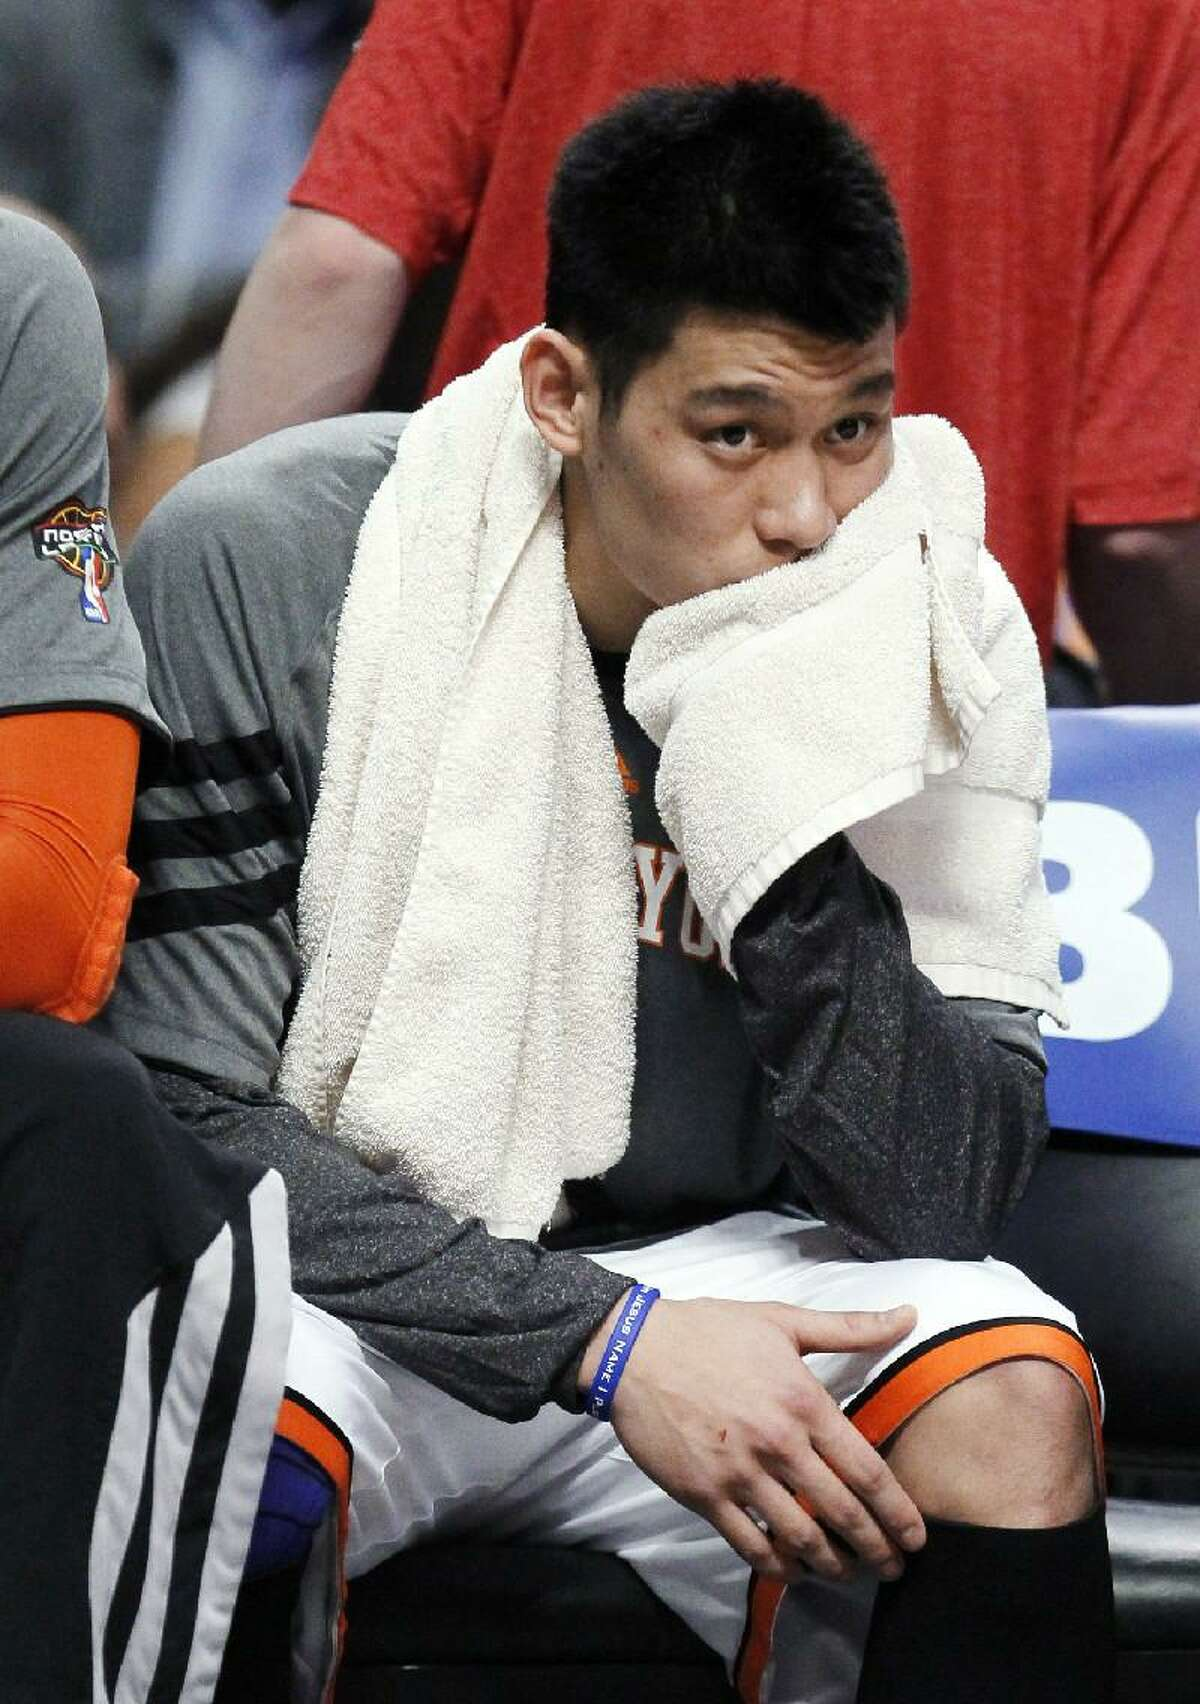 ASSOCIATED PRESS In this March 12 file photo, New York Knicks guard Jeremy Lin sits on the bench during the first half of a game against the Chicago Bulls in Chicago. Lin is having left knee surgery and will miss six weeks, likely ending his amazing breakthrough season. The team said Saturday that the point guard had an MRI exam this week that revealed a small, chronic meniscus tear.